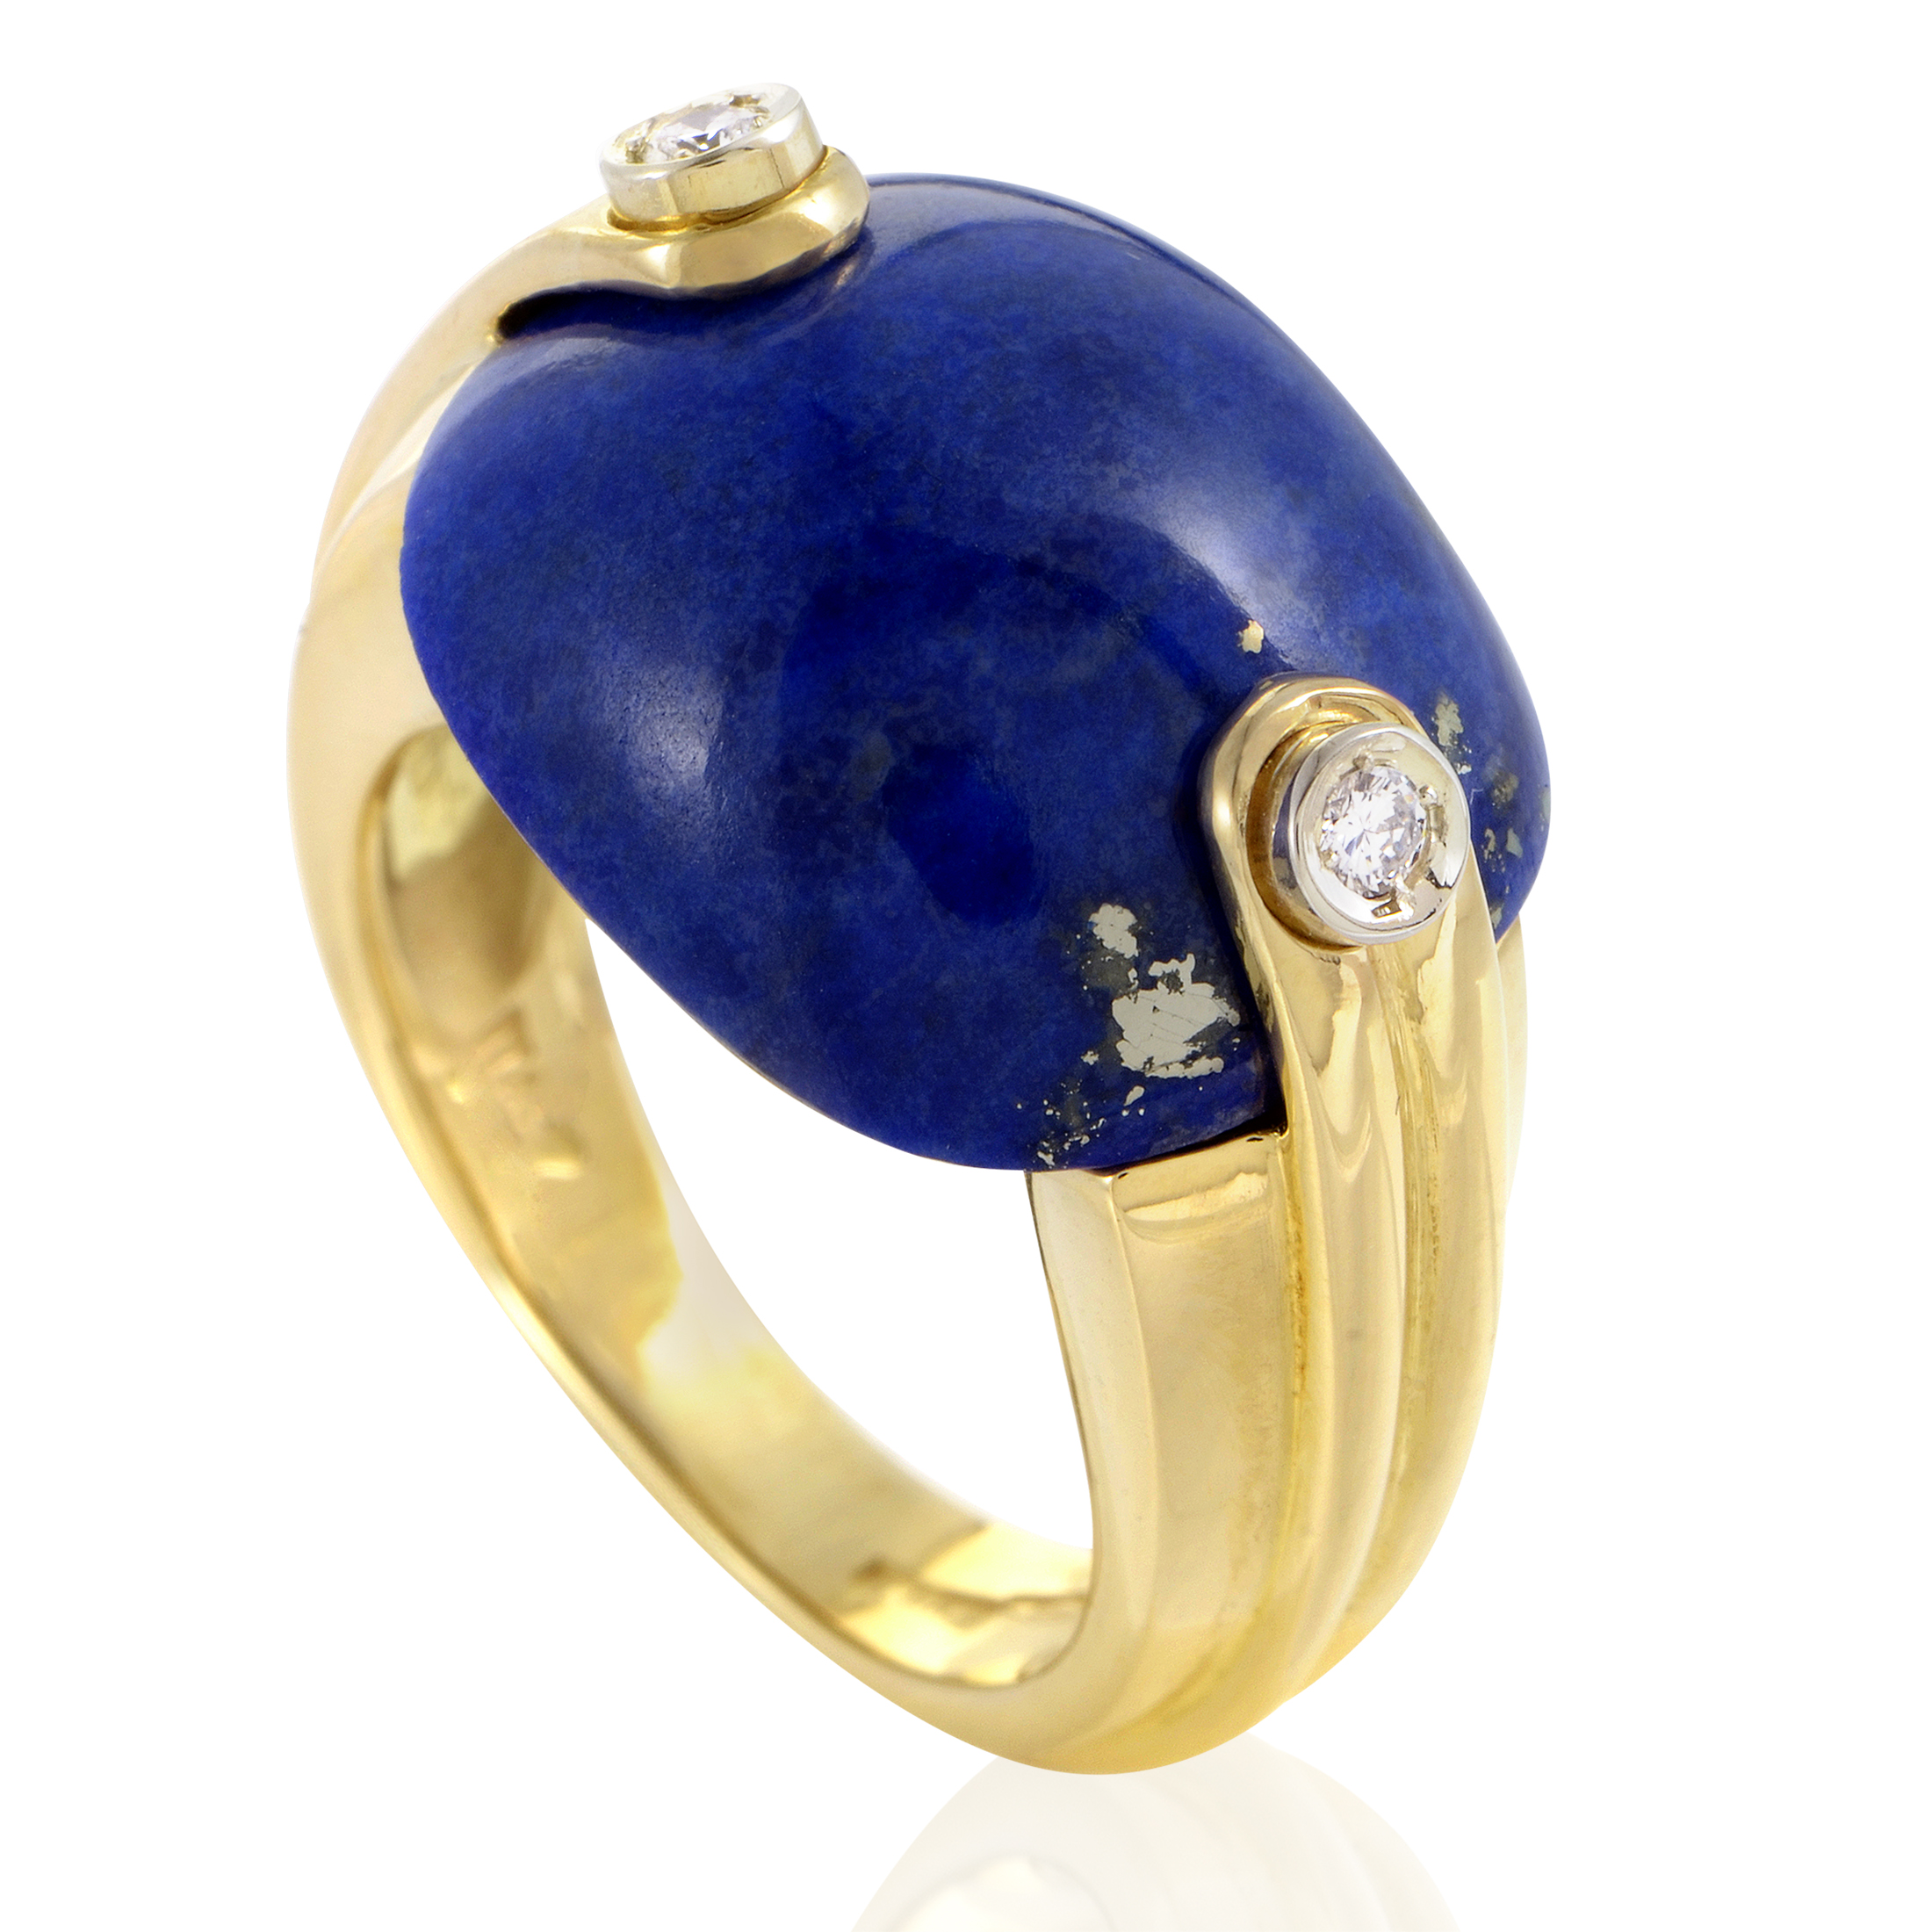 Antonini Women's 18K Yellow Gold Diamond & Lapis Lazuli Ring